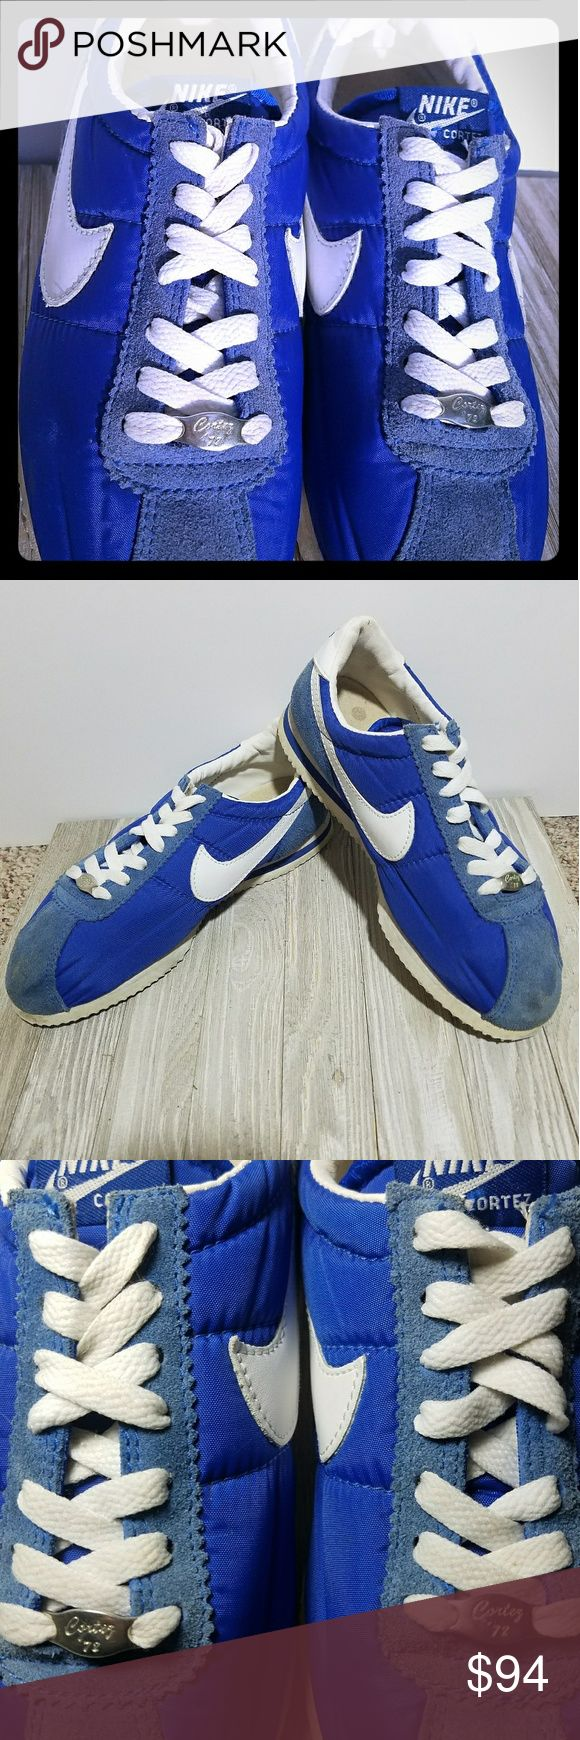 NIKE Cortez '72 Vintage Shoes NIKE Cortez '72 Rare Vintage shoes. Used, in good condition for all the years it's been out.  Amazing story about how these shoes came out, and why they were actually remade a few years ago. I can meet you in the town of Rome anytime, or in Wisconsin Rapids, or Nekoosa, or Stevens Point certain days.  Or I can ship them to you via PayPal, or Facebook Messenger payment system. Thank you! 😊 Nike Shoes Sneakers